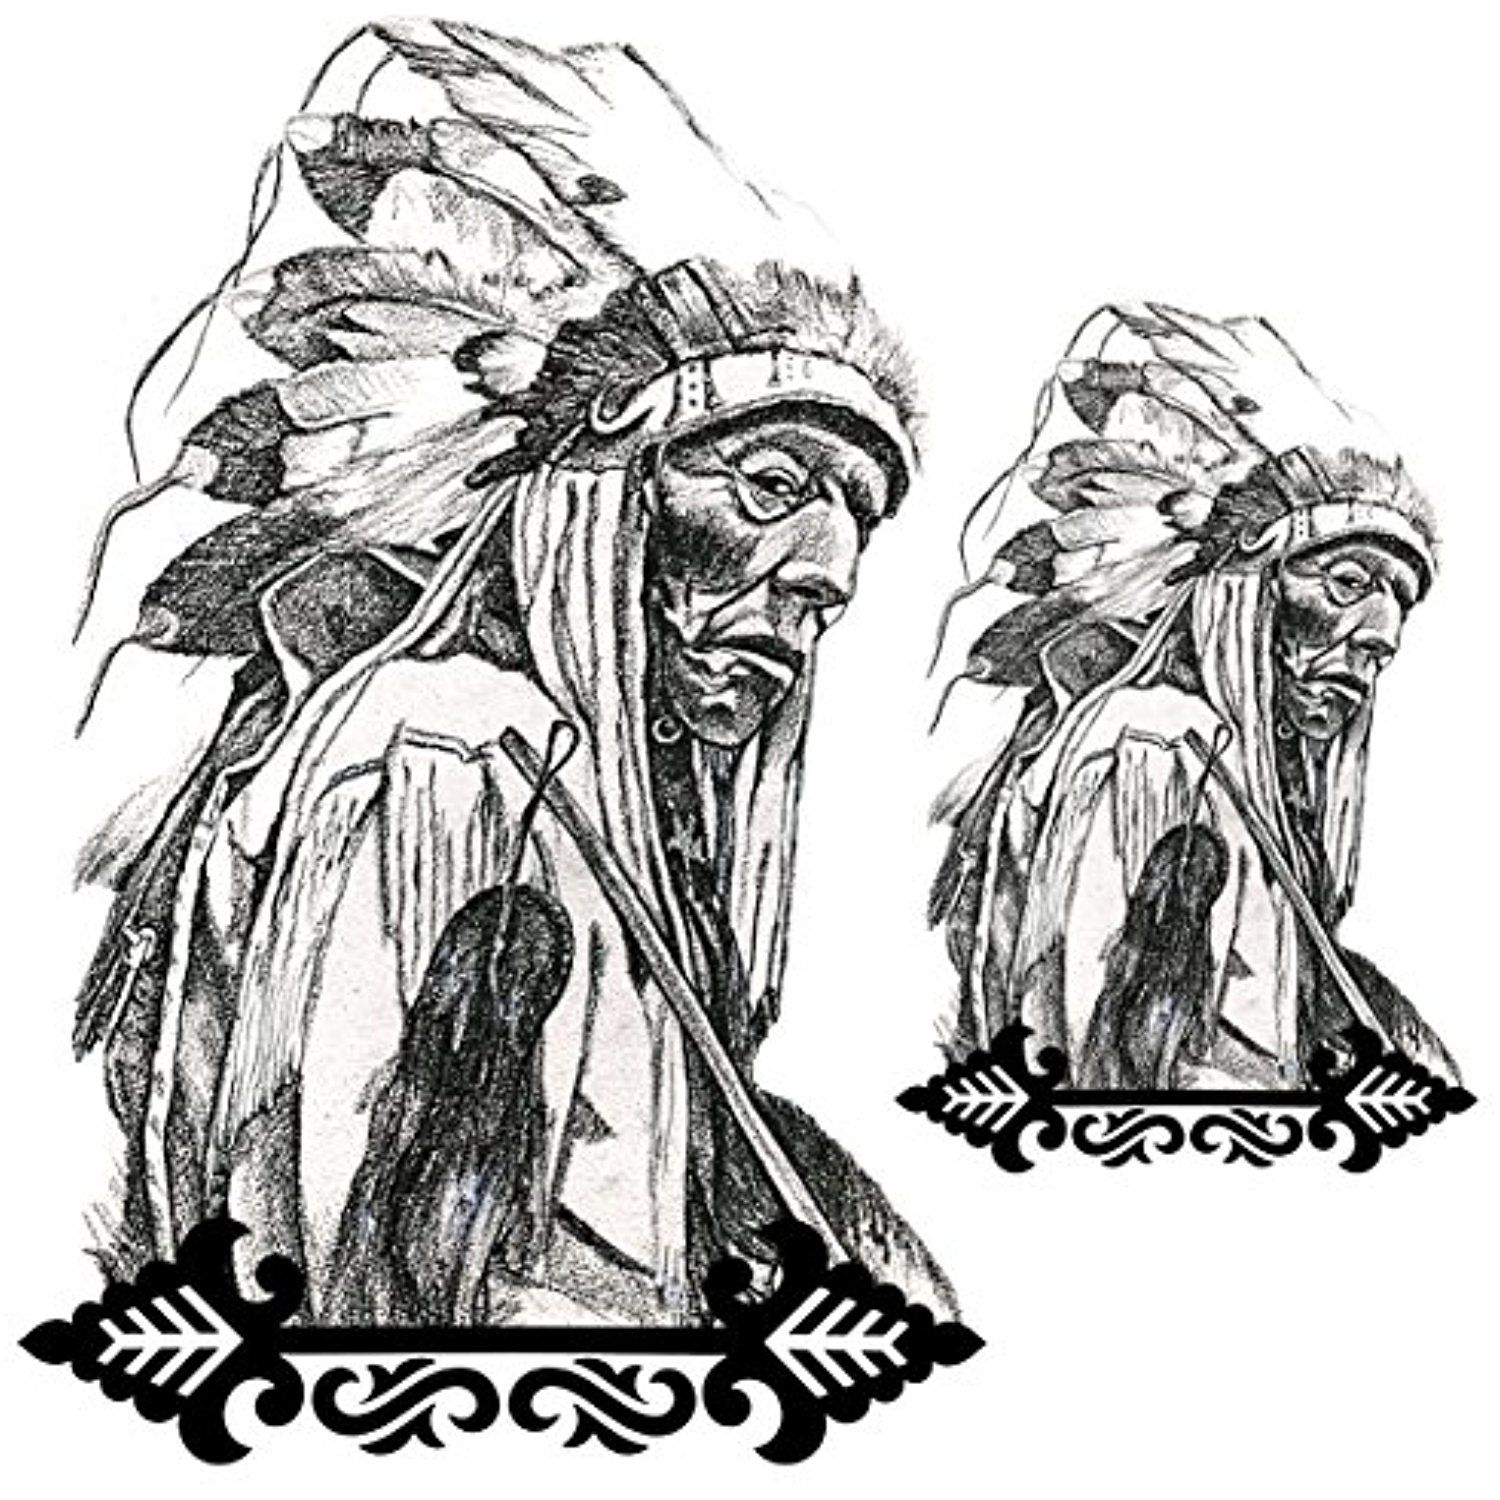 1500x1500 coloring crafts indian chief drawings indian chief ape hangers